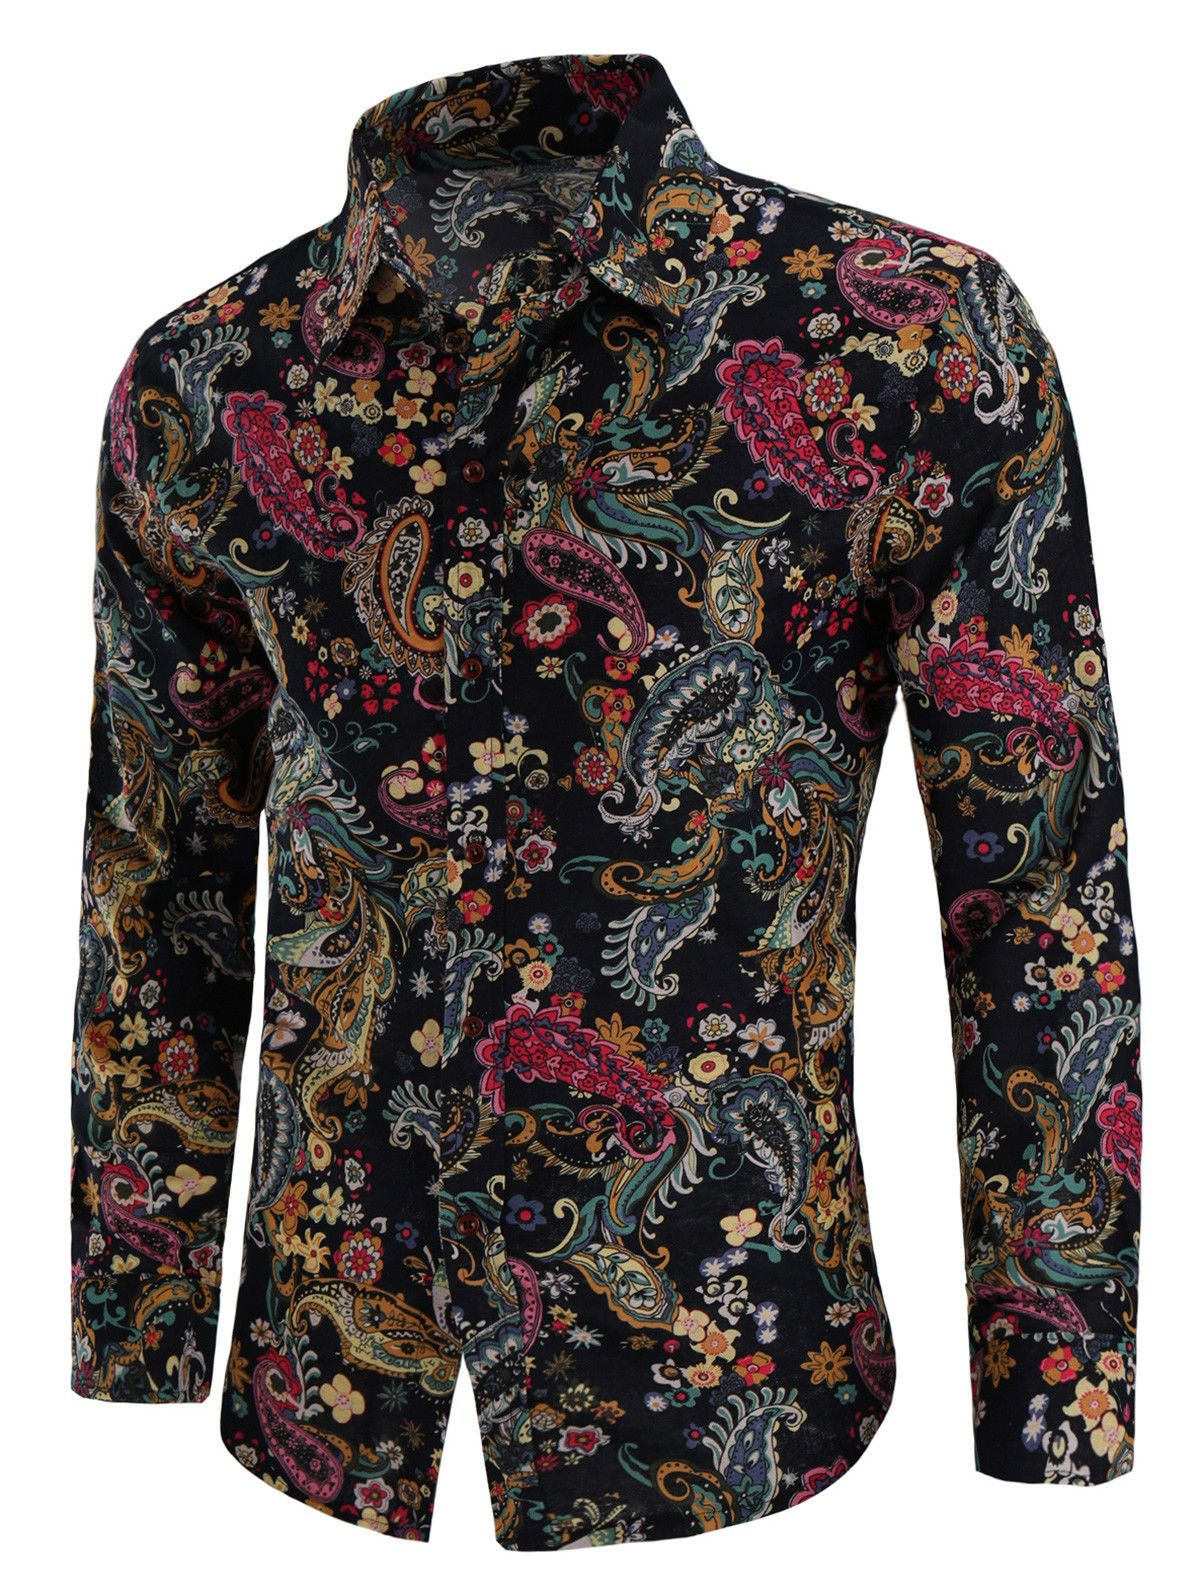 5414830961e  13.99 - L-4Xl Fashion Men Paisley Print Linen Casual Shirt Long Sleeve  Shirts  ebay  Fashion